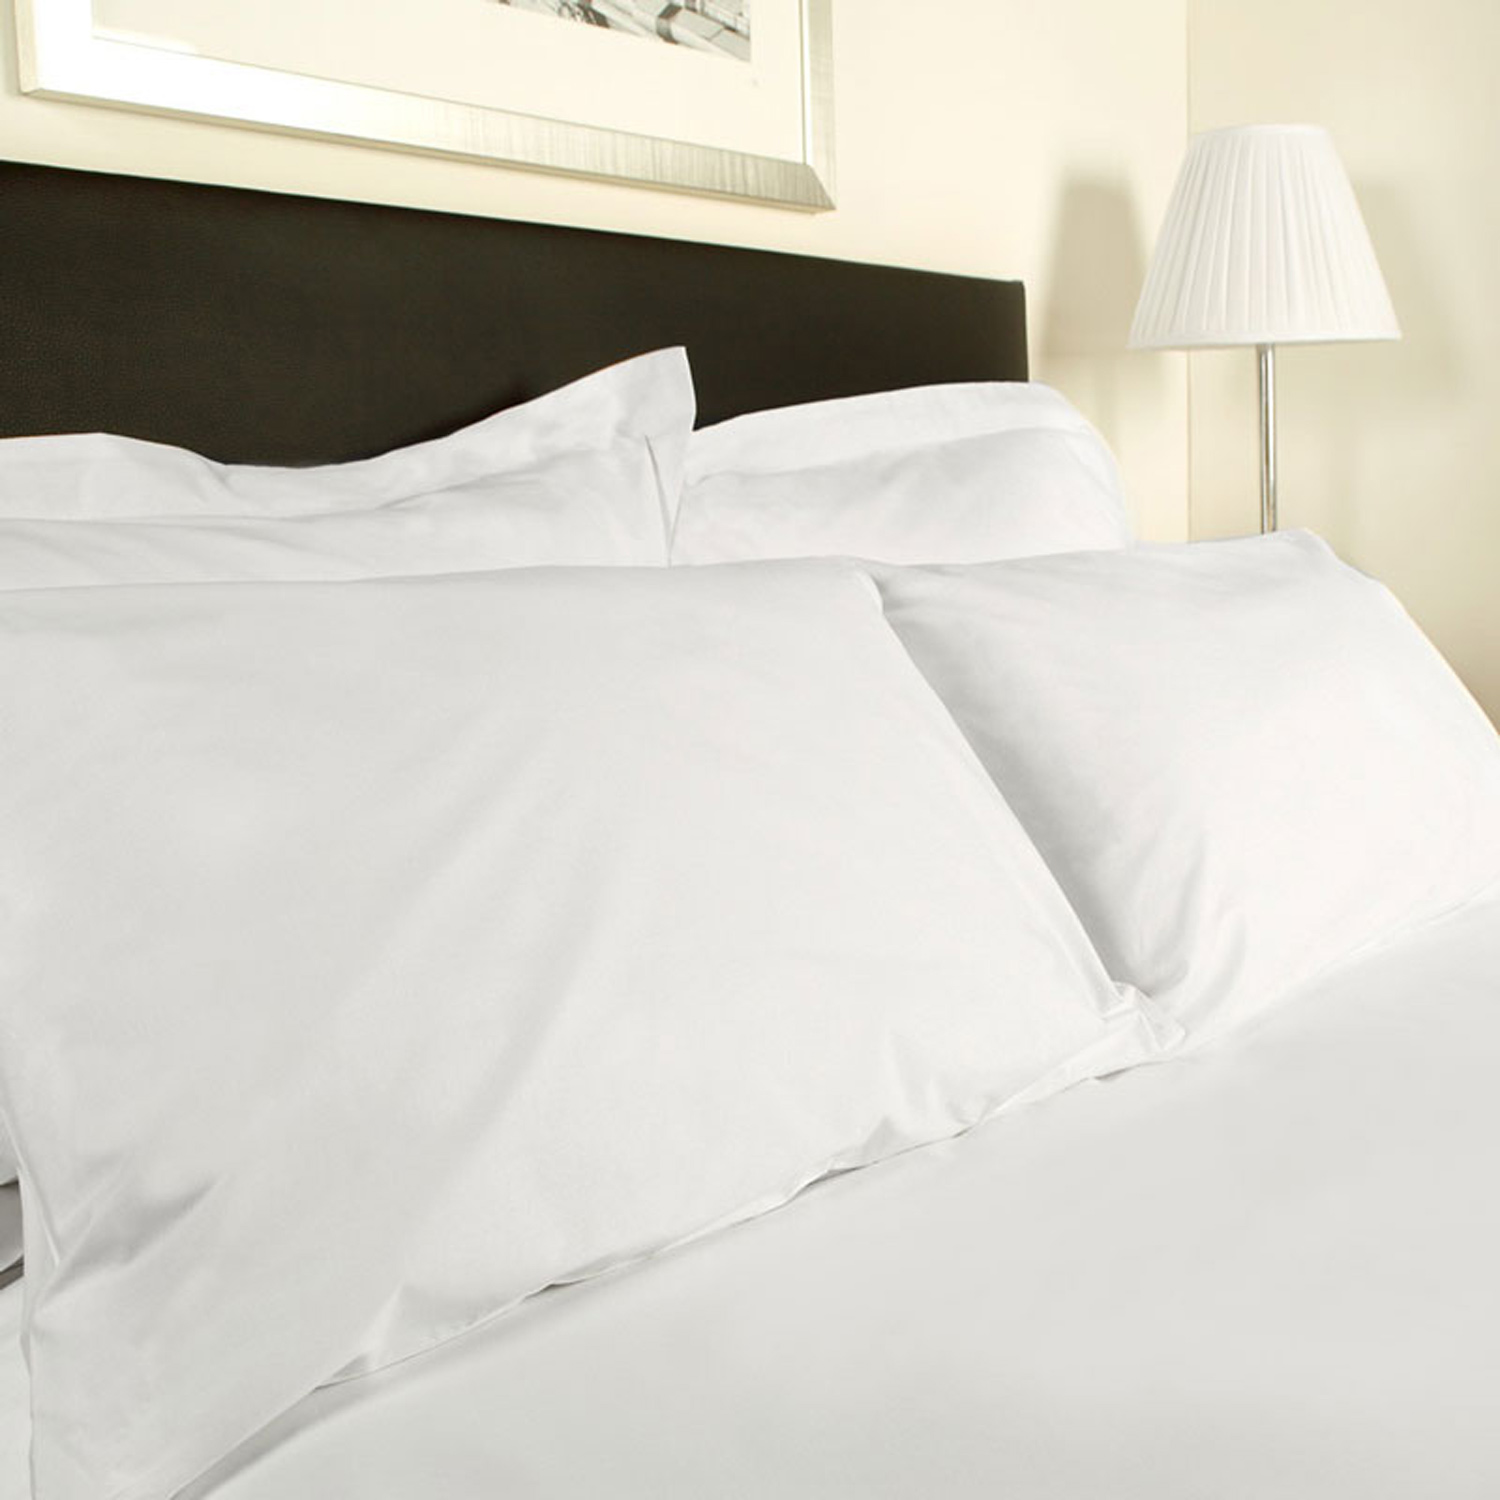 Image of Belledorm 200 Thread Count Extra Large Housewife Pillowcase, White